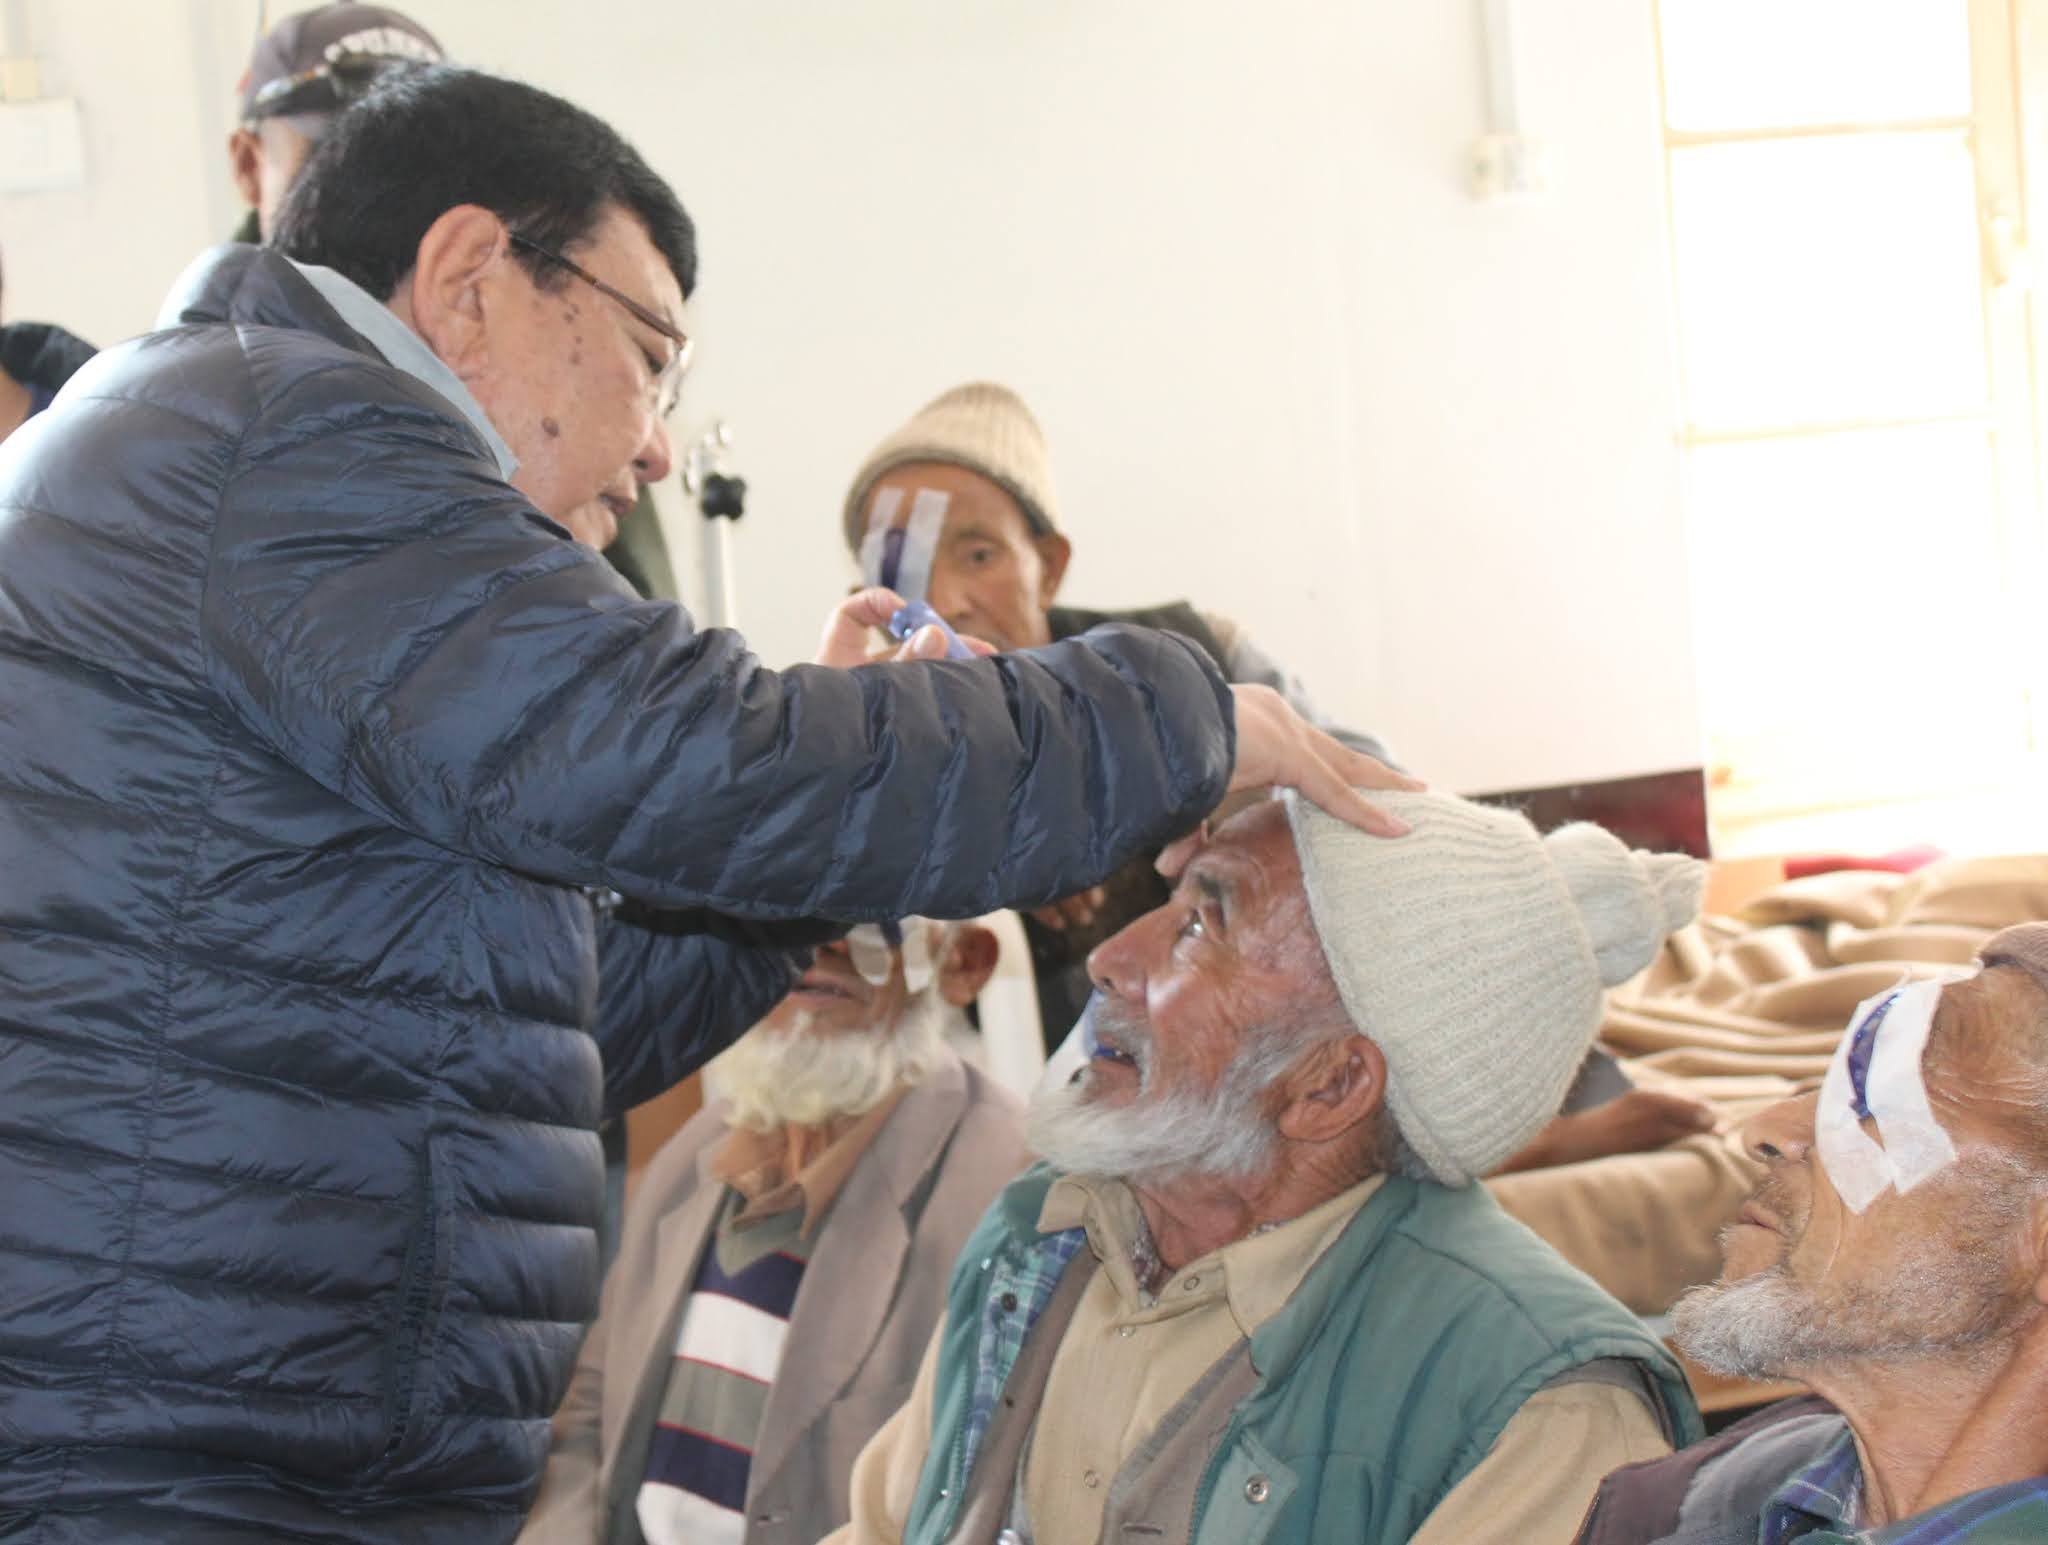 Dr sanduk ruit famous eye surgeon of nepal examining post operative patient